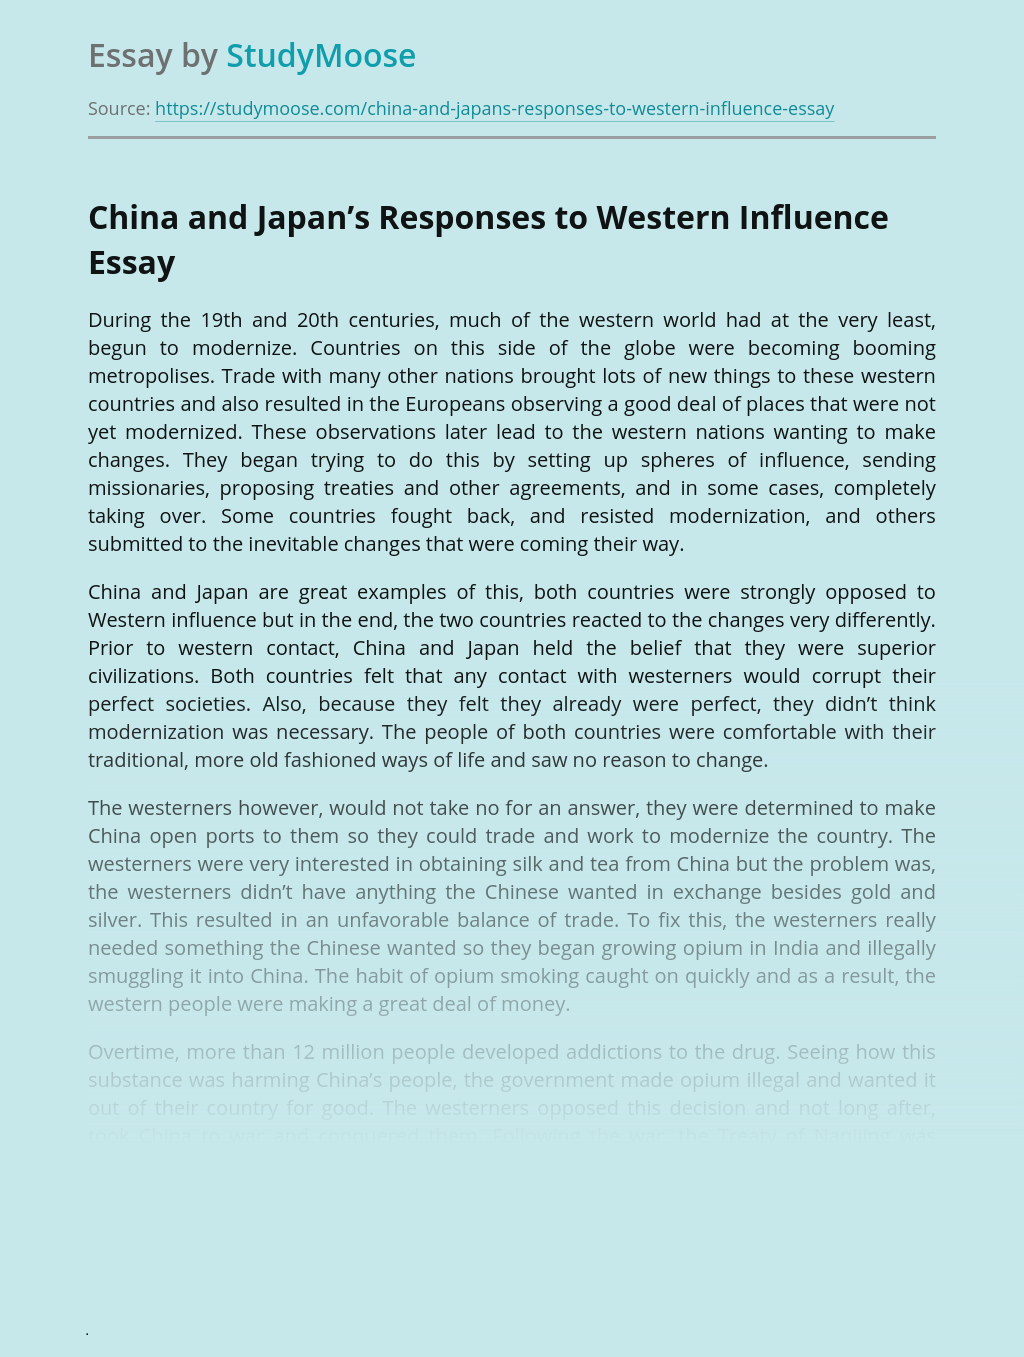 China and Japan's Responses to Western Influence